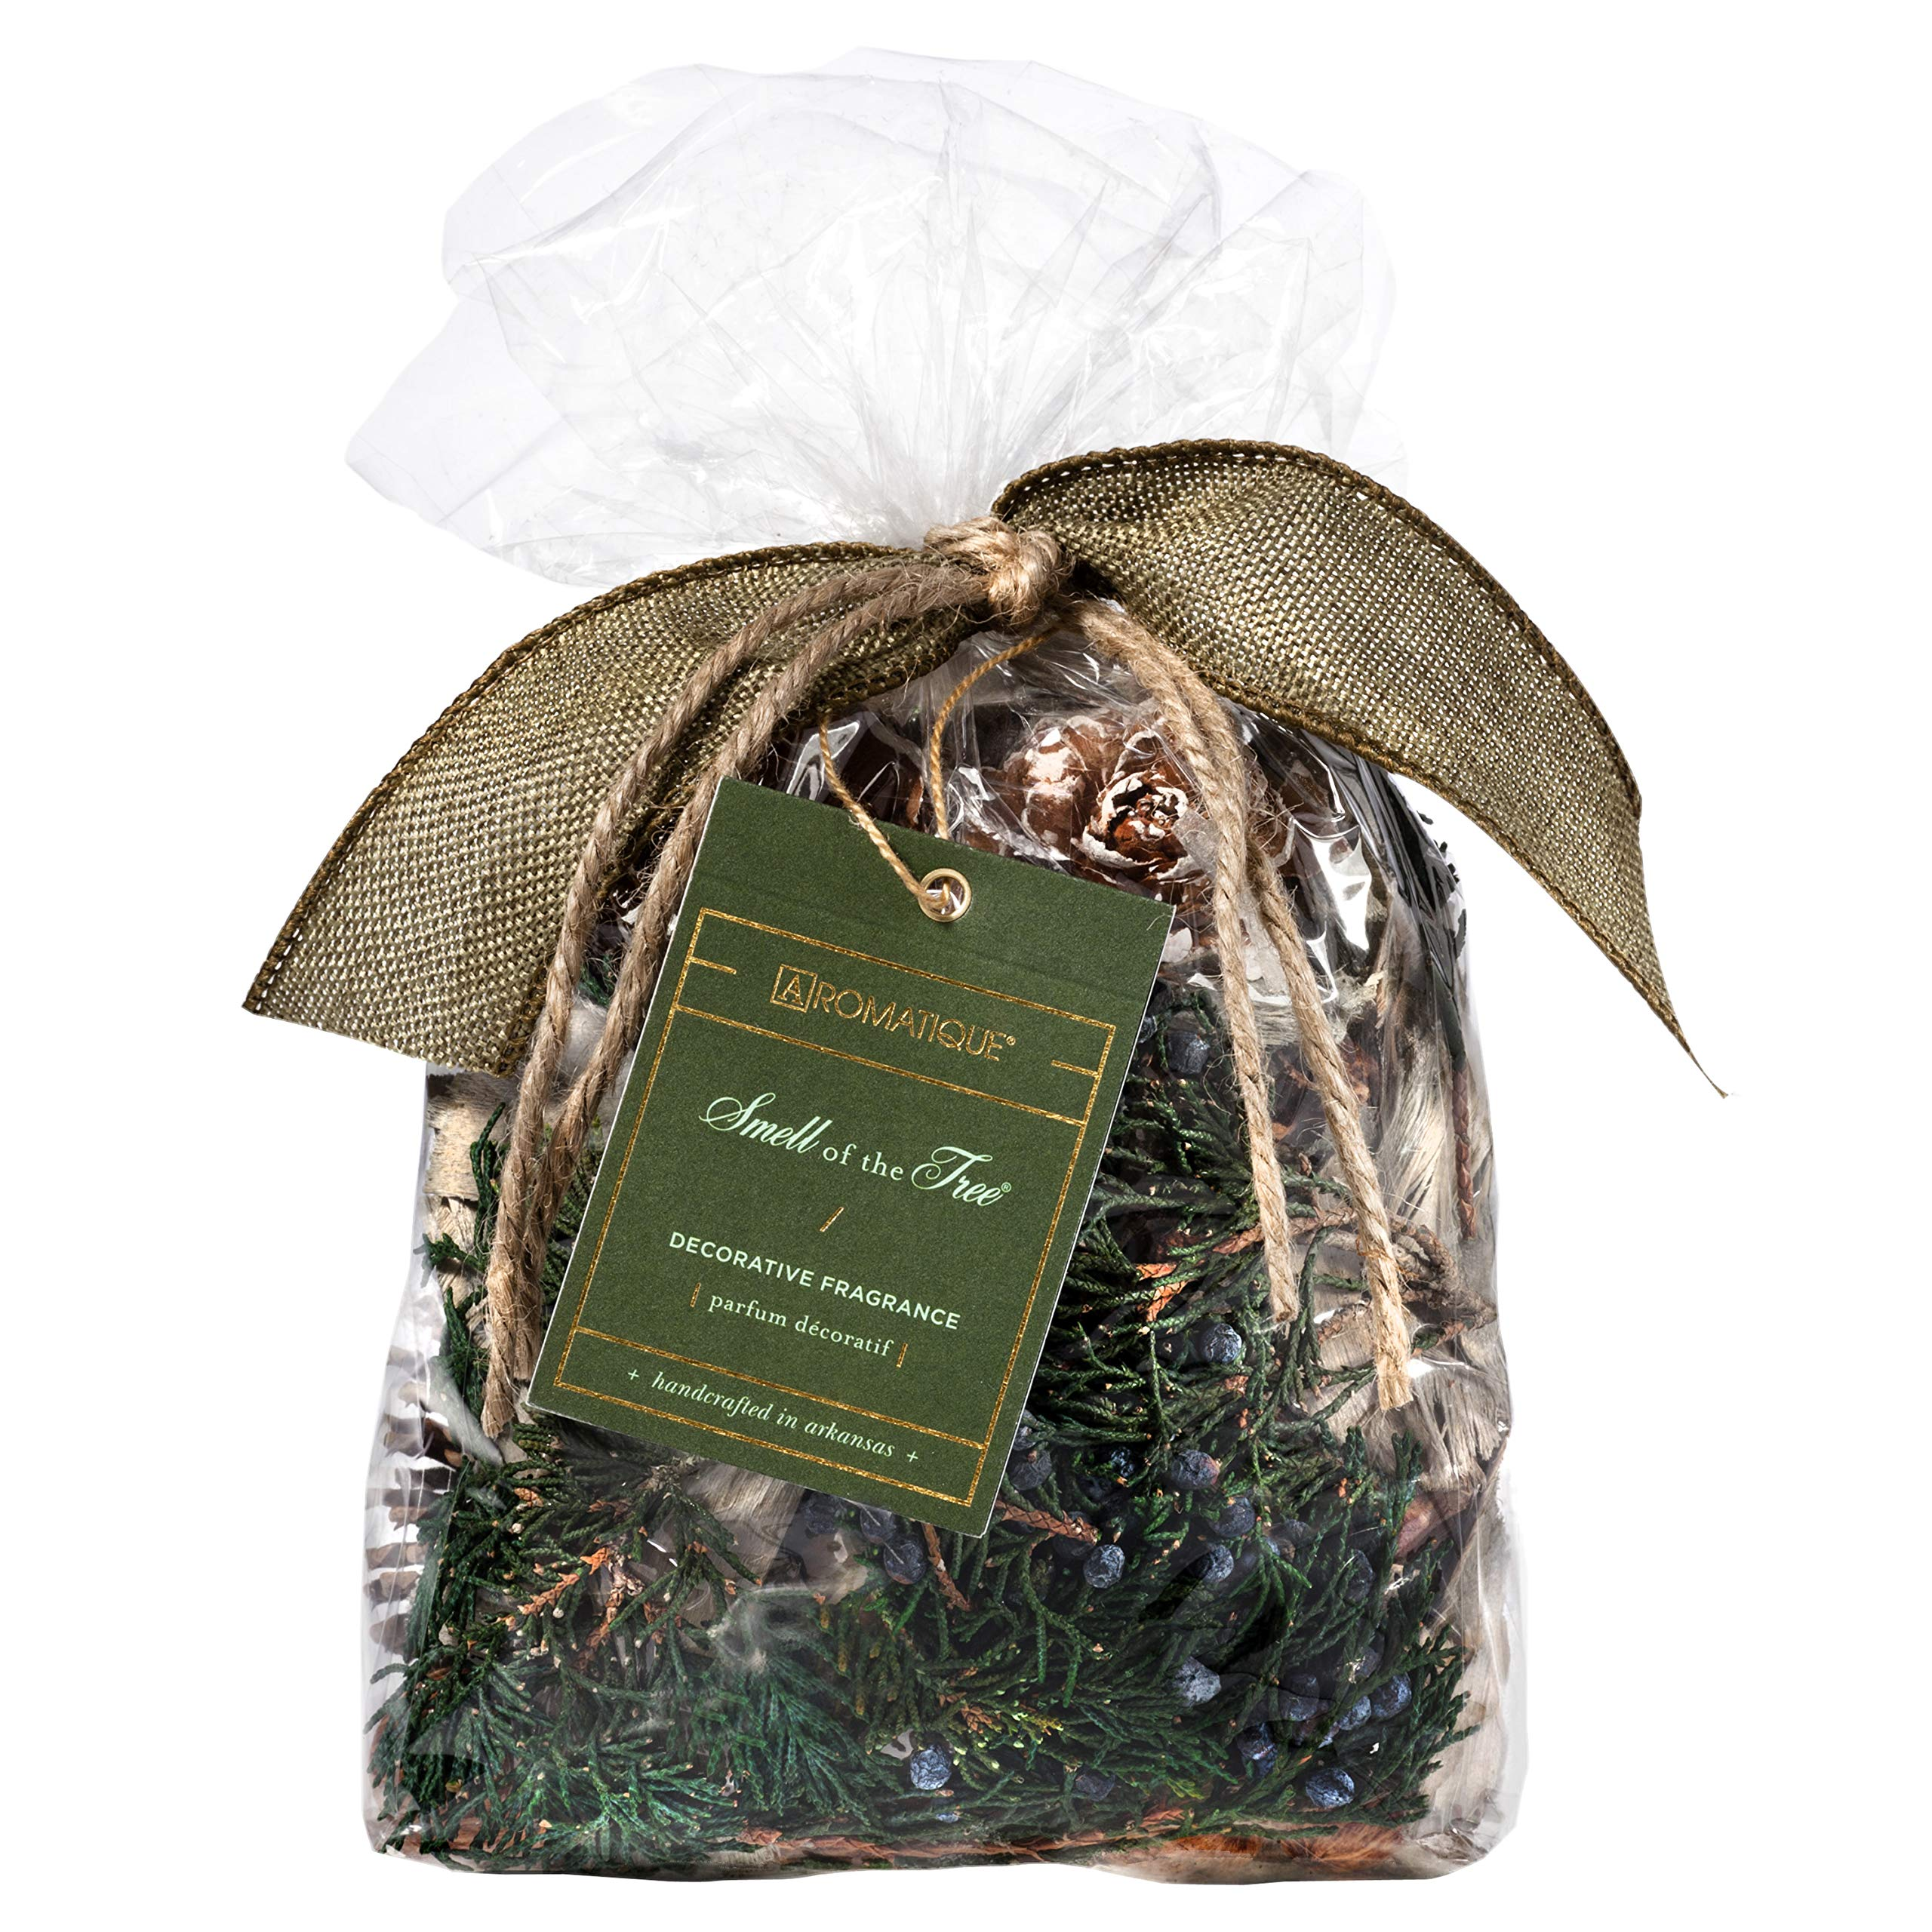 Aromatique Decorative Potpourri Bag- Smell of the Tree Decorative Fragrance (8 Ounce Bag) by Aromatique